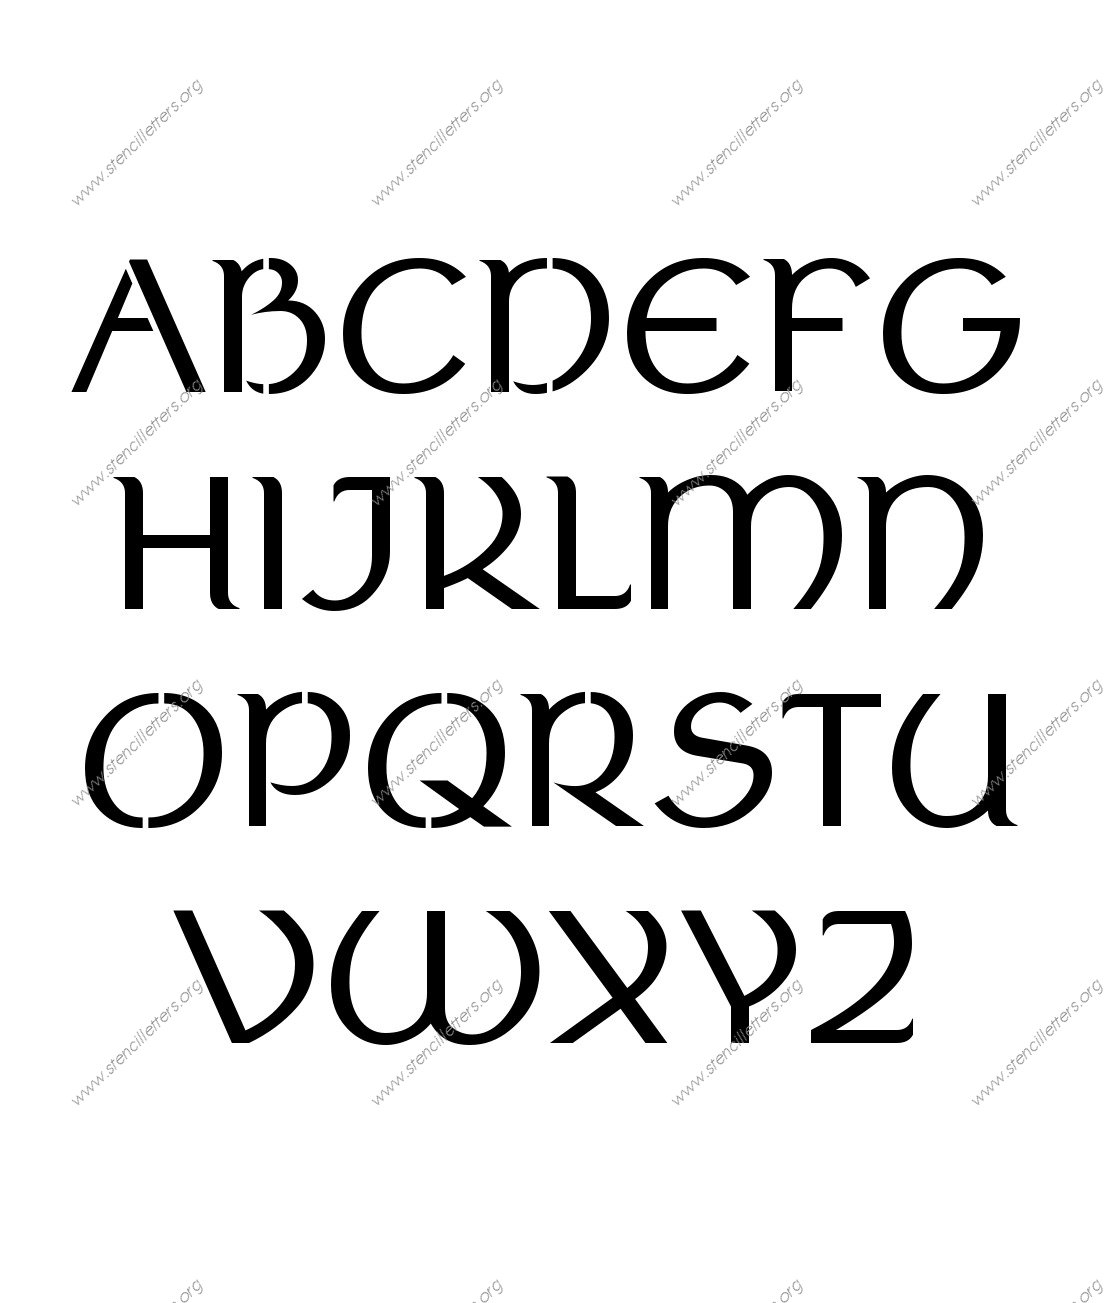 Ancient Celtic A to Z alphabet stencils